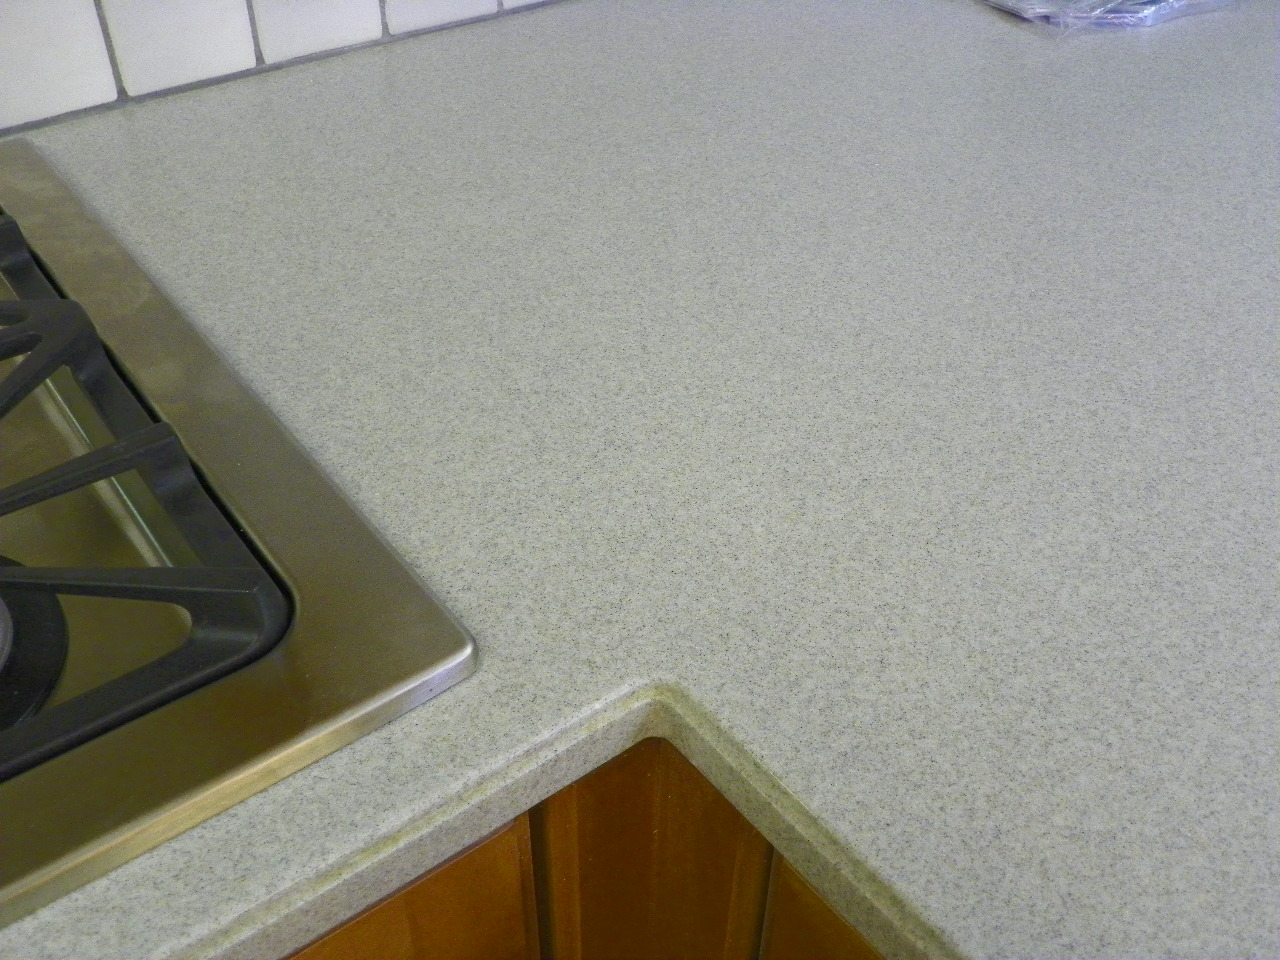 corian countertops care repair the solid surface and countertop repair corian 682